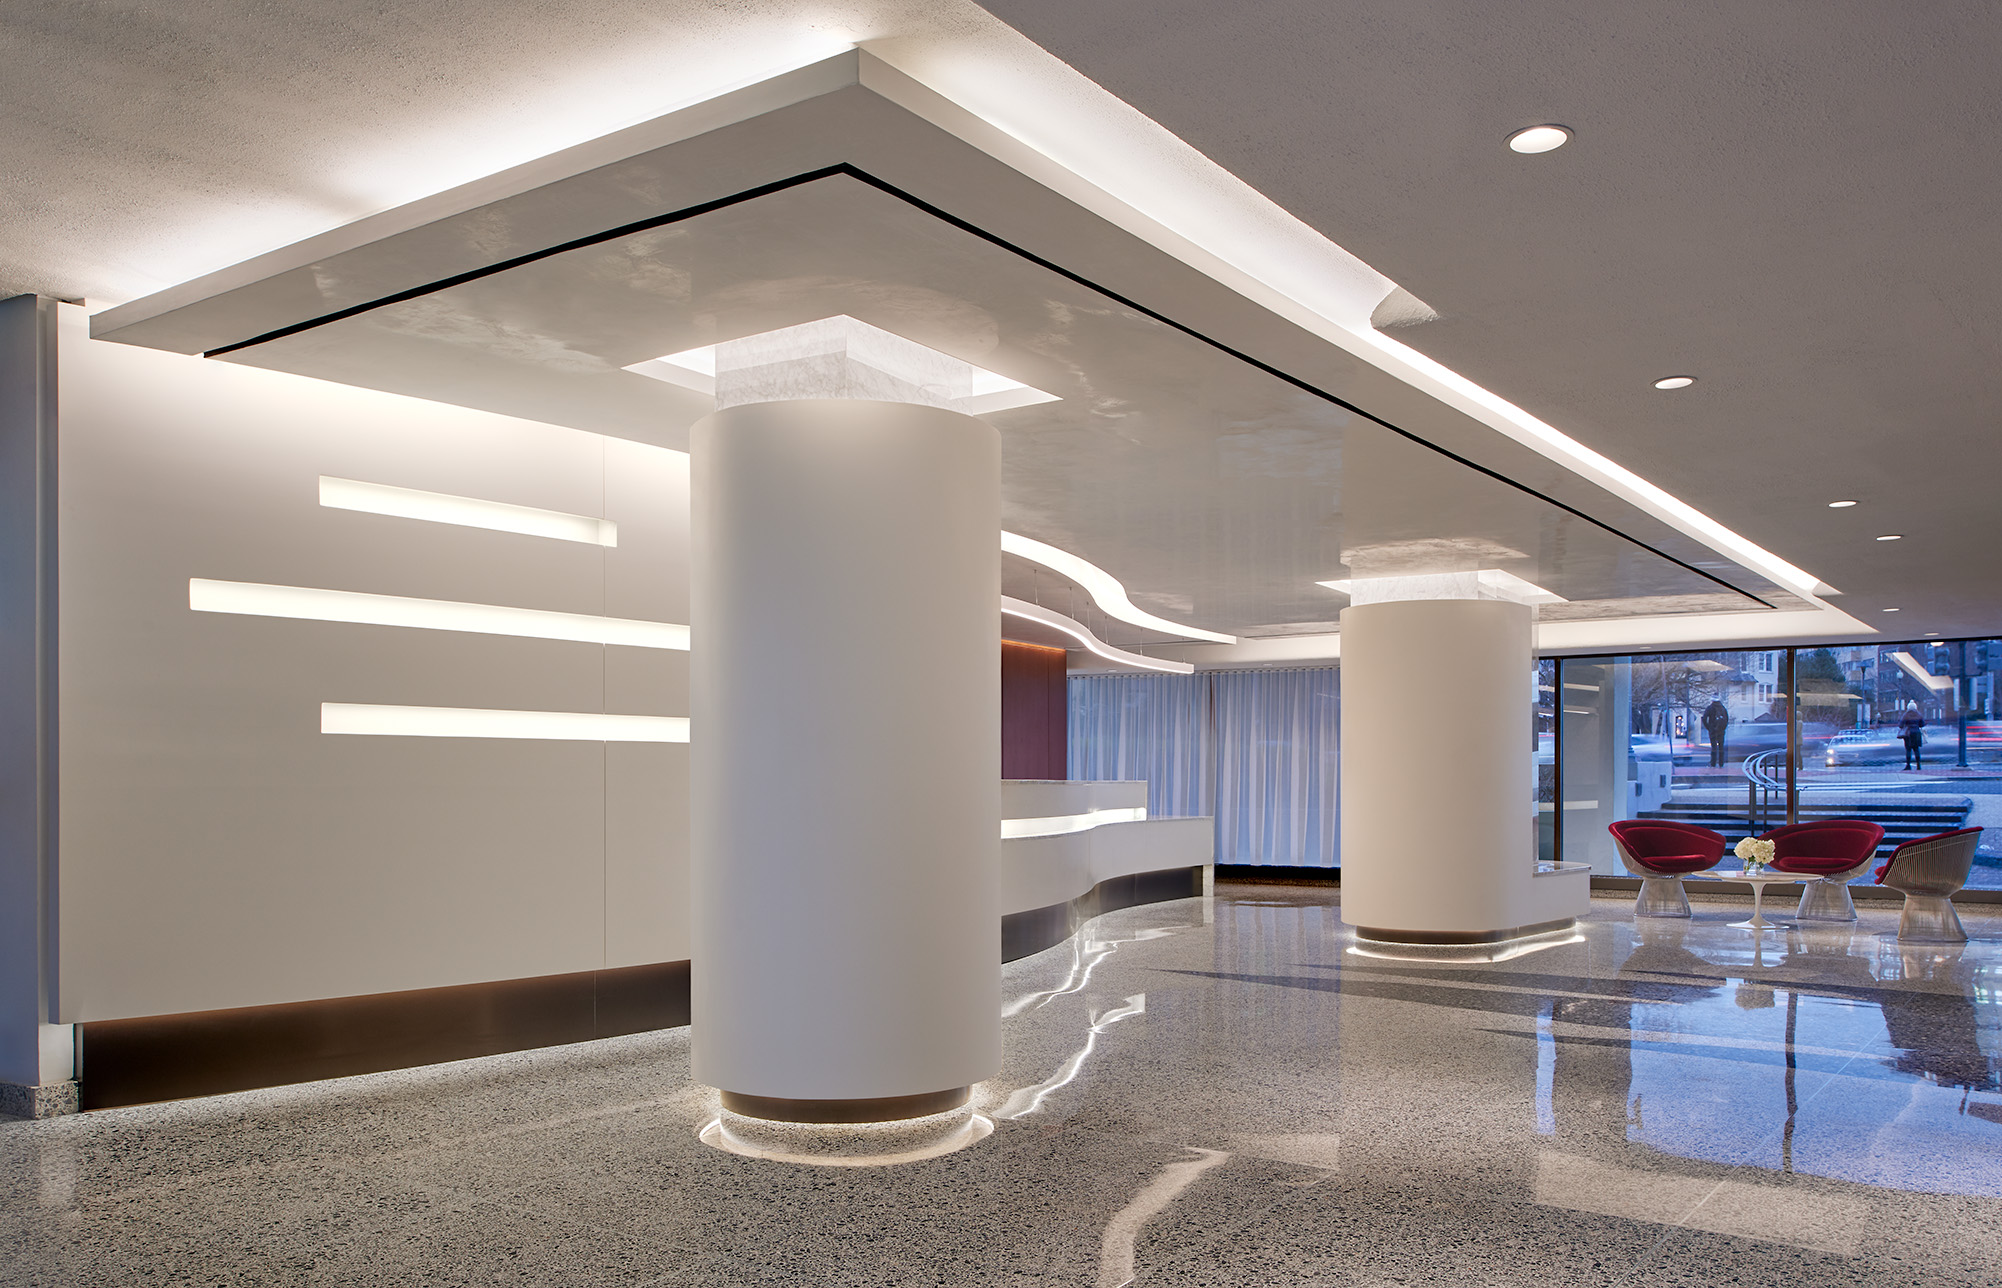 Watergate_Lobby_McInturff_Architects_6_Anice.jpg